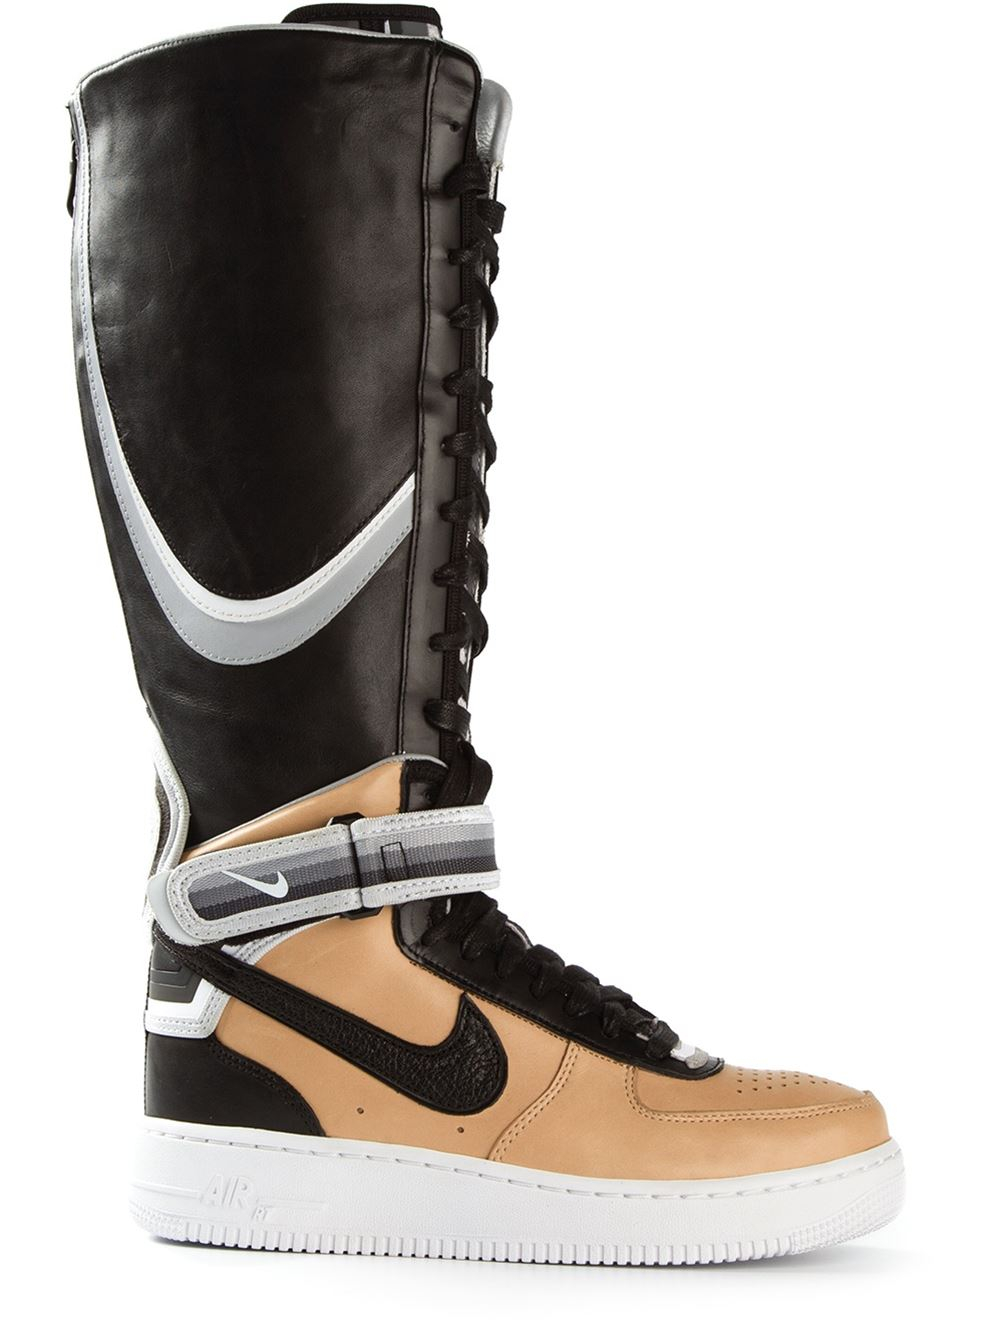 5183f0c6ede6 Nike Air Force 1 Boots